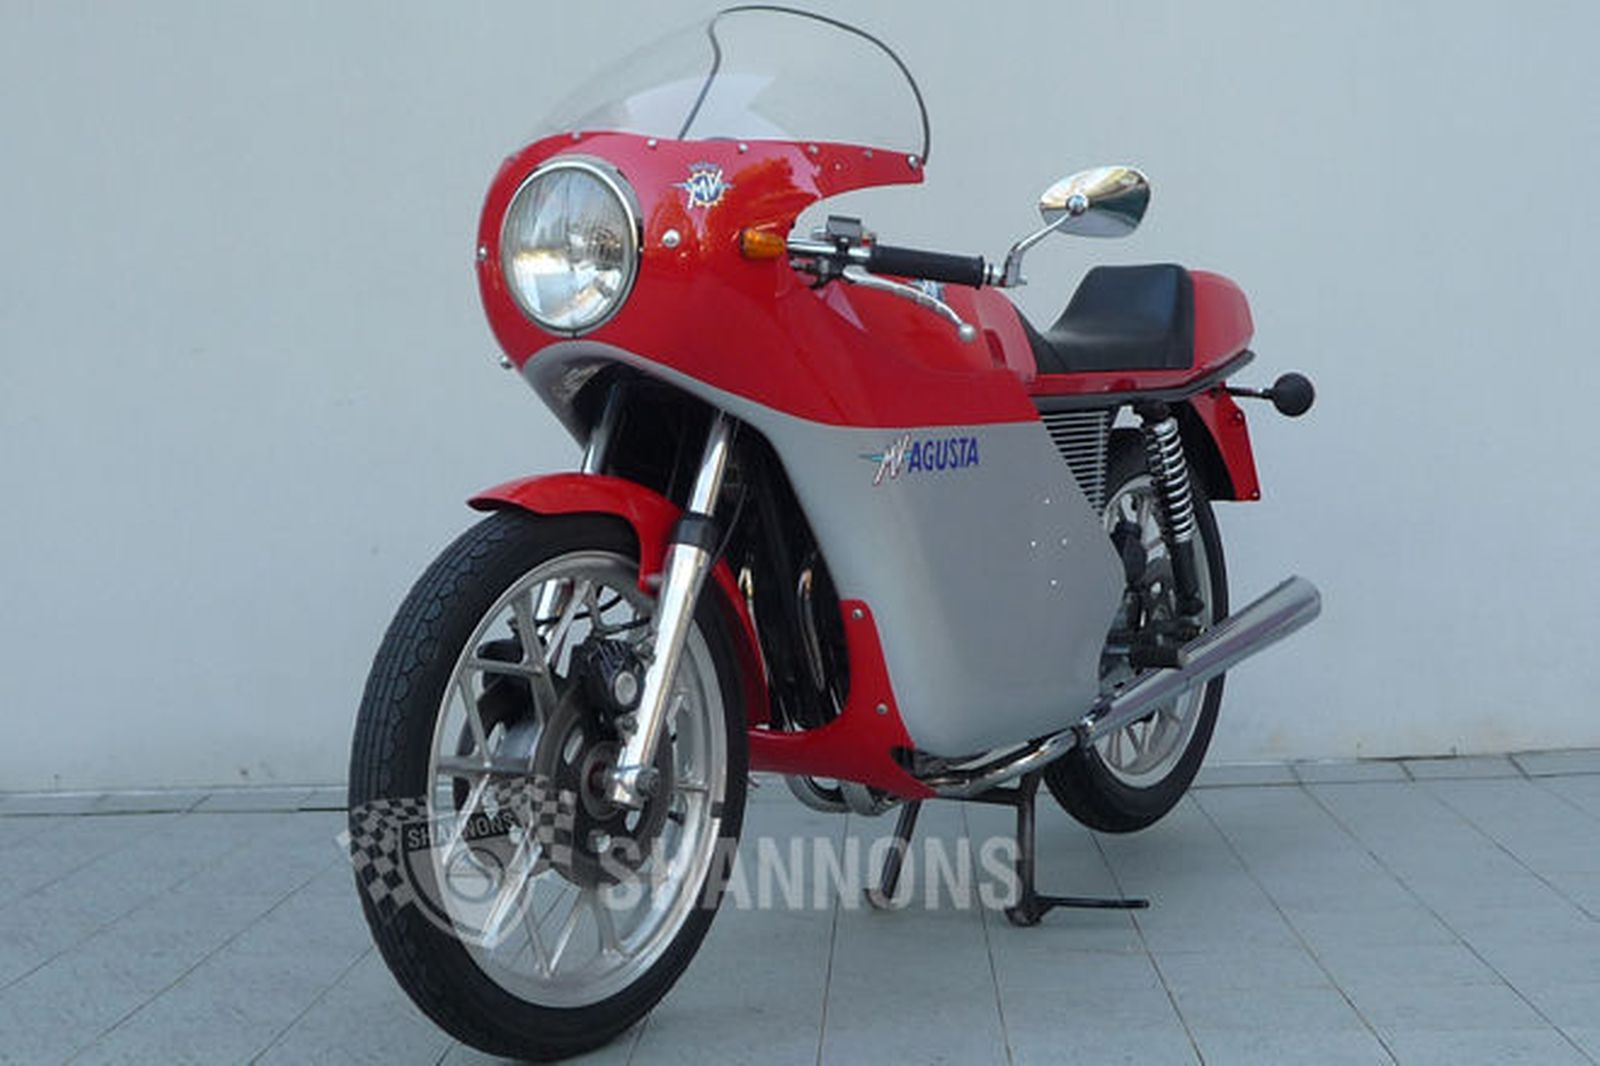 Mv agusta 350 photo - 4